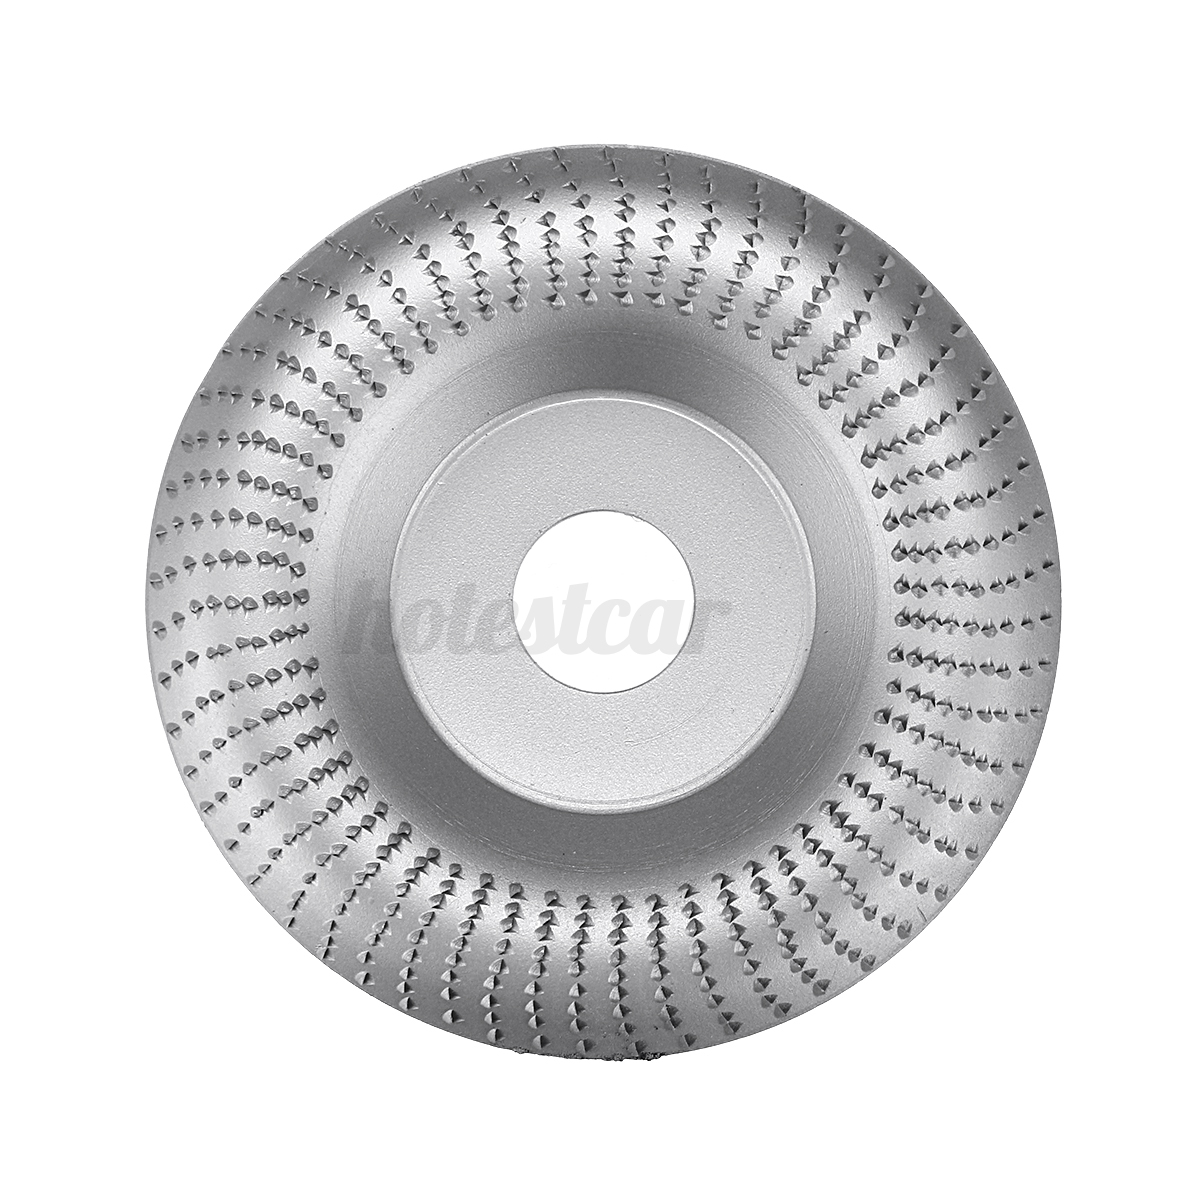 110mm-Carbide-Wood-Sanding-Carving-Shaping-Disc-For-Angle-Grinder-Grinding-Wheel thumbnail 16